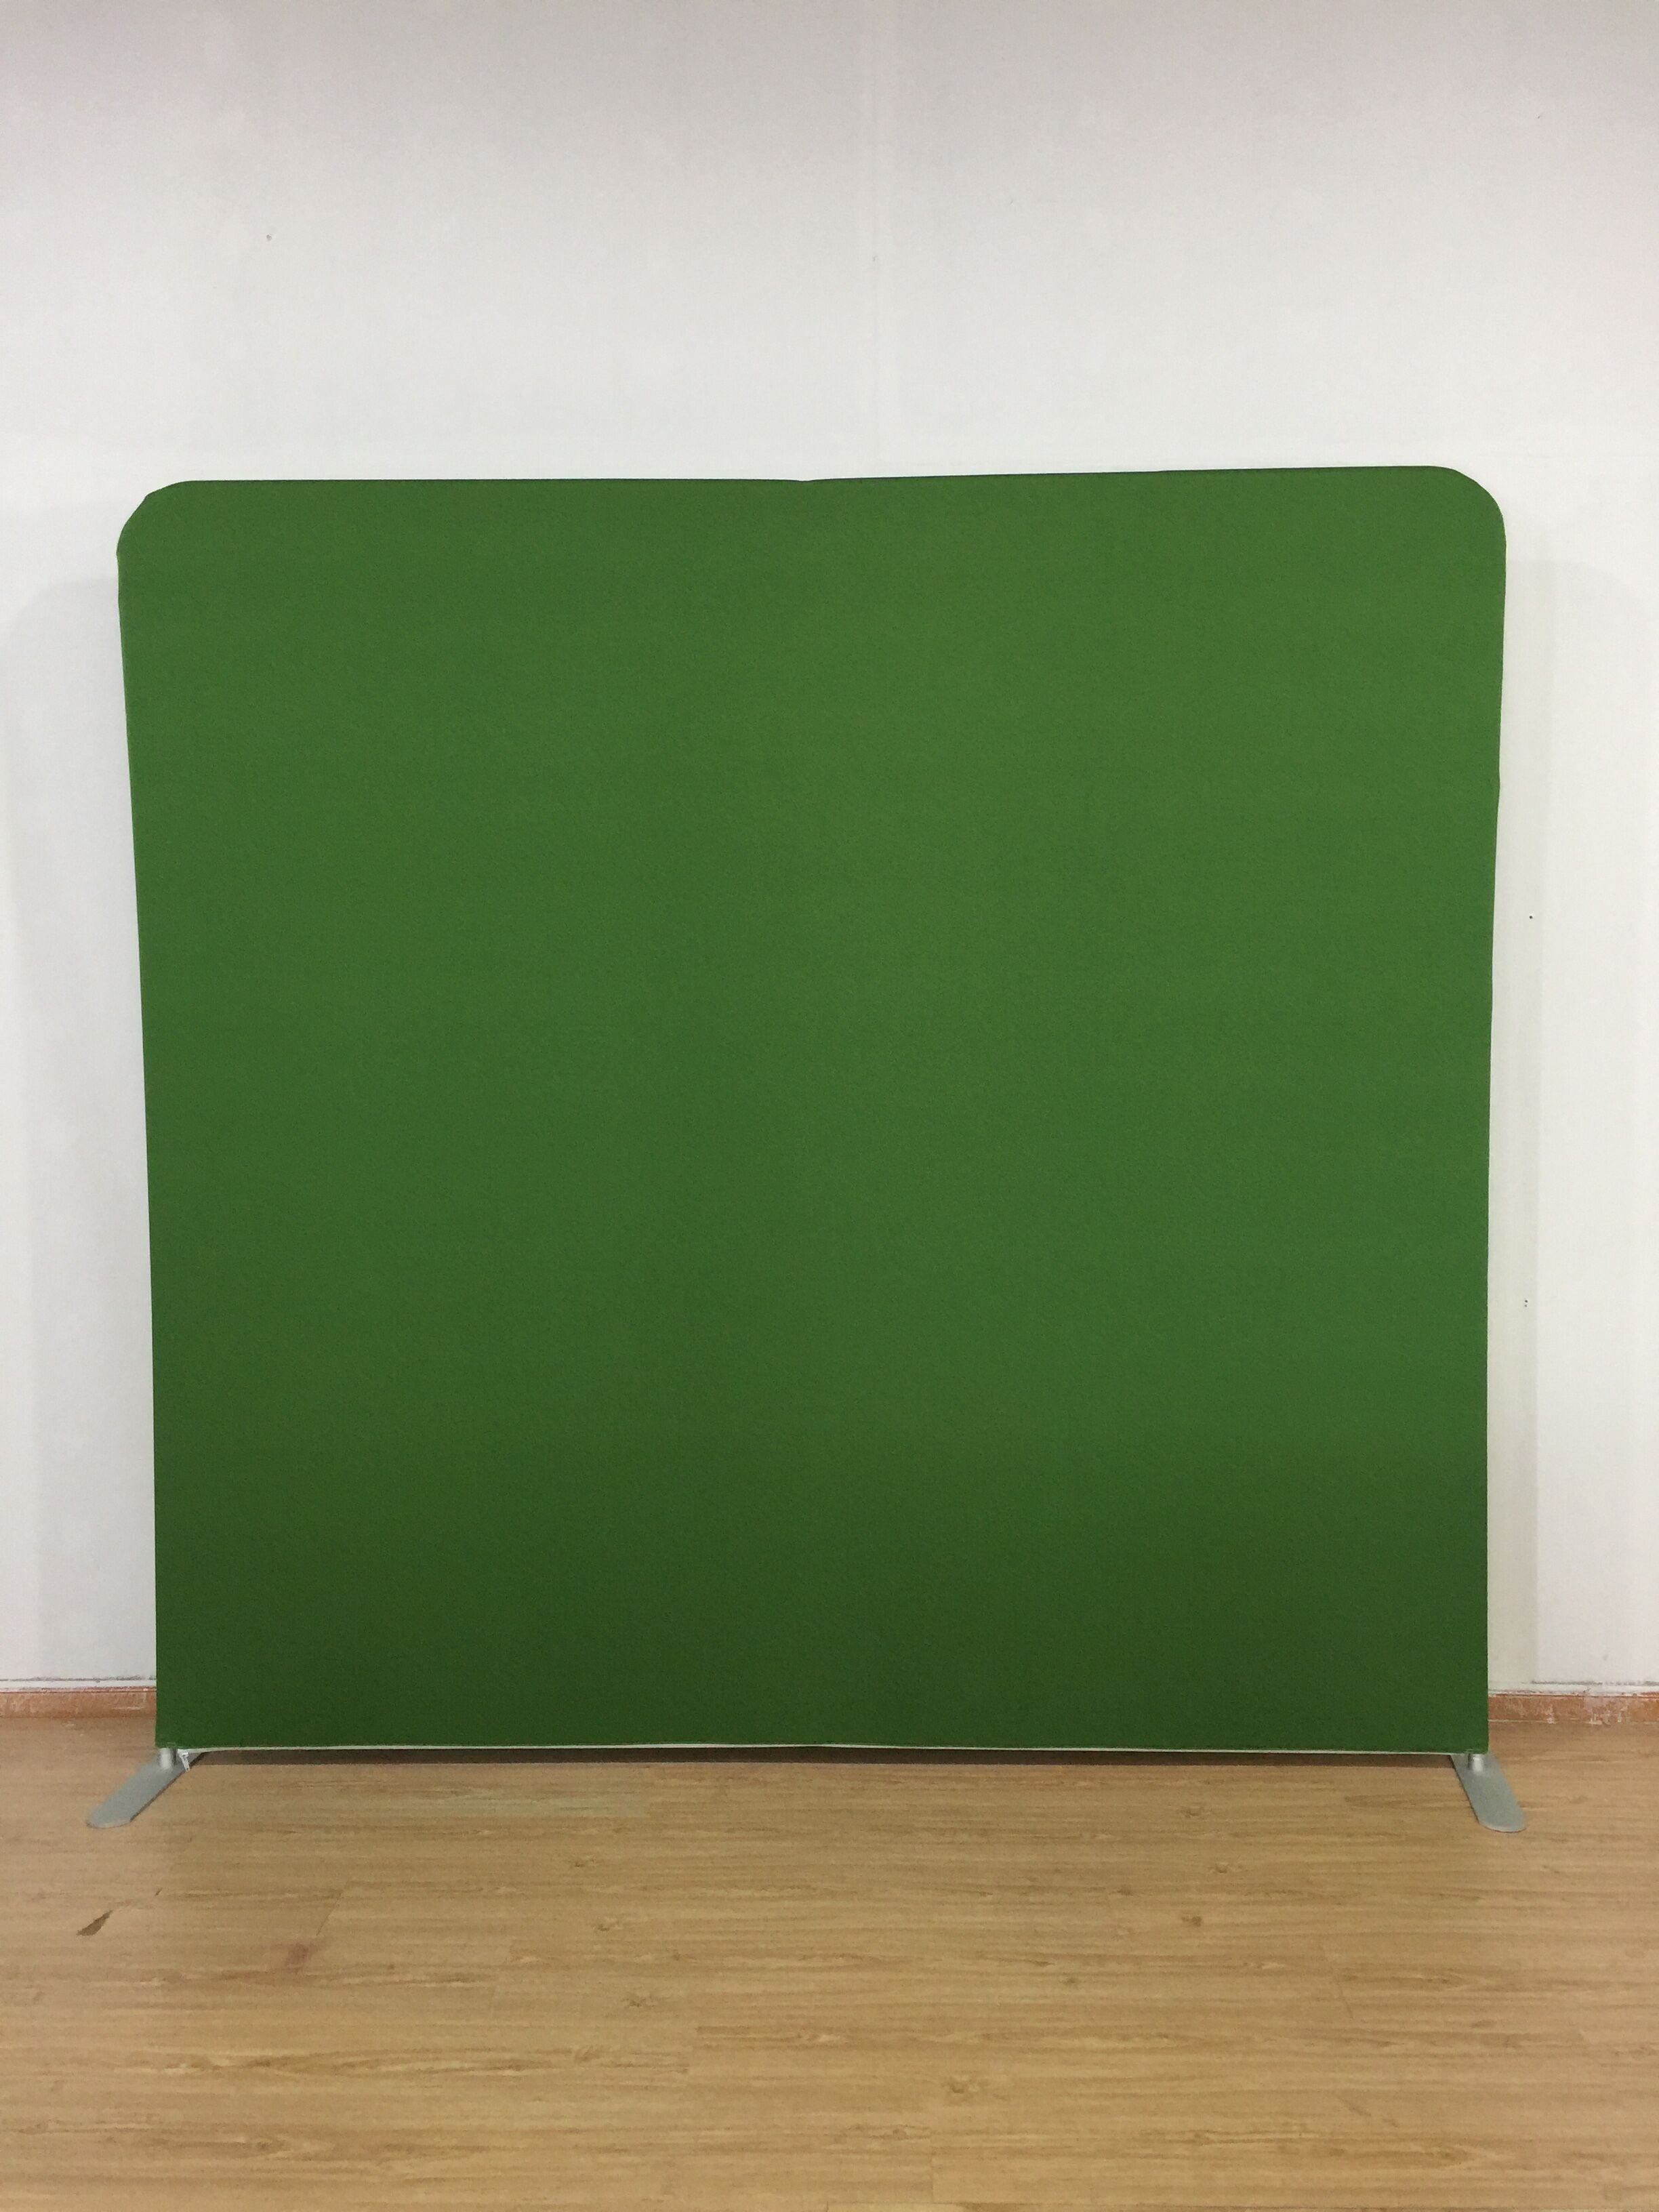 8x8 Pillowcase Tension Backdrop- Green Screen